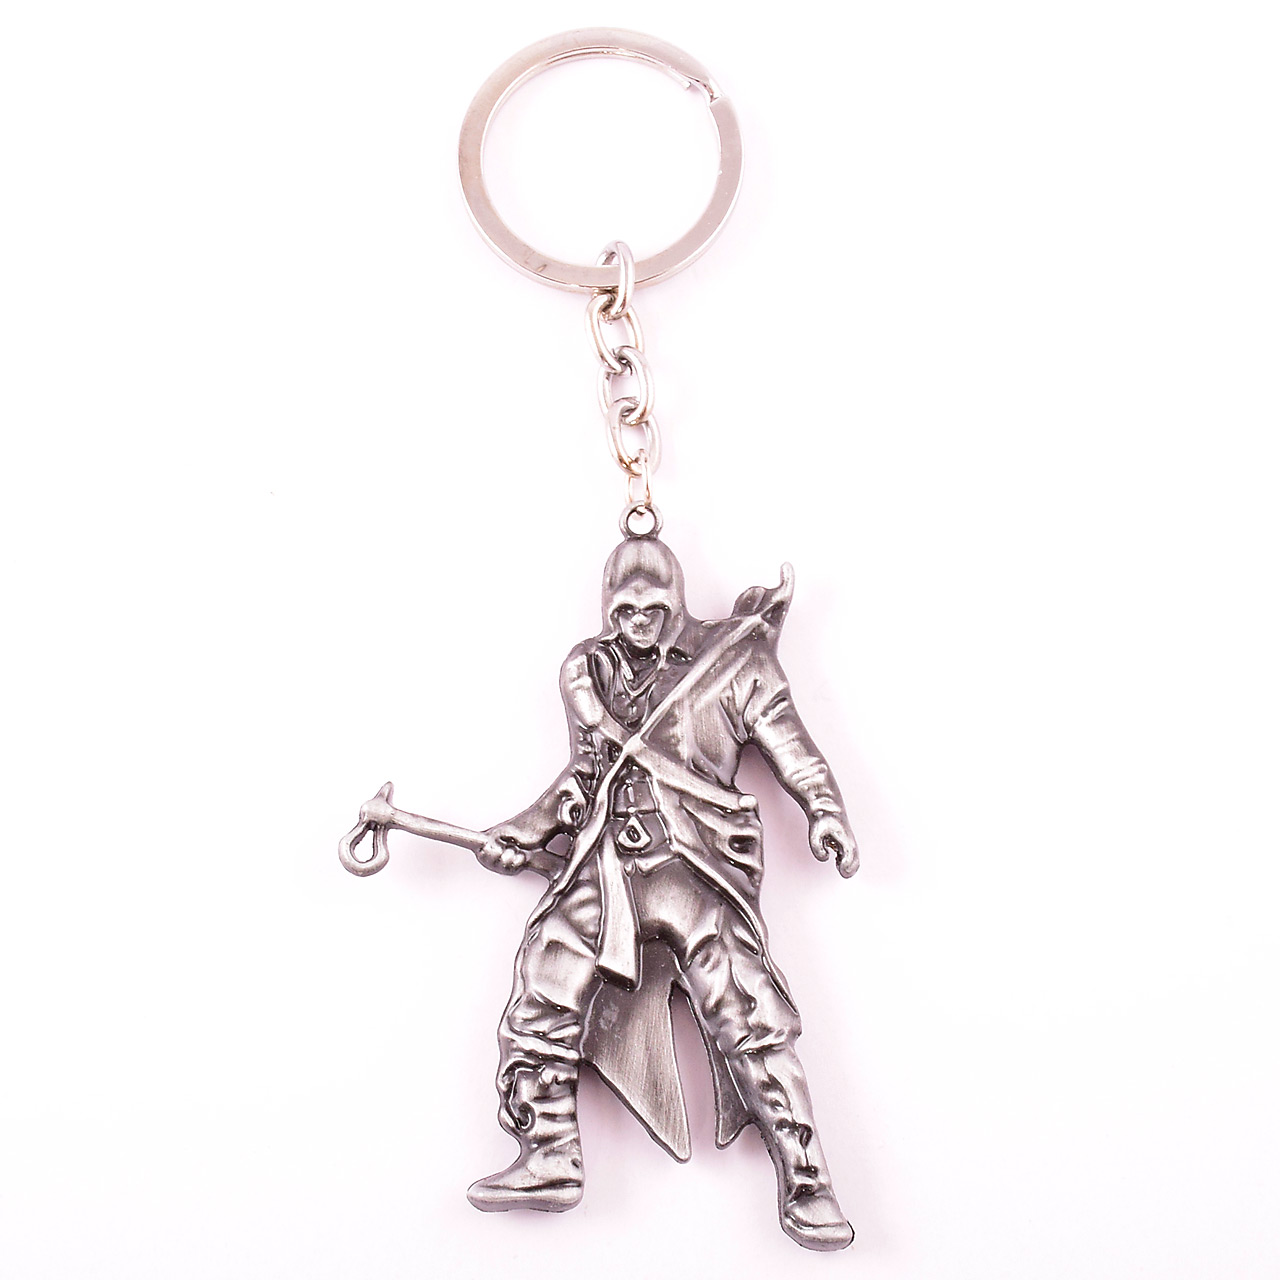 جاسوییچی مدل Assassins Creed Silver